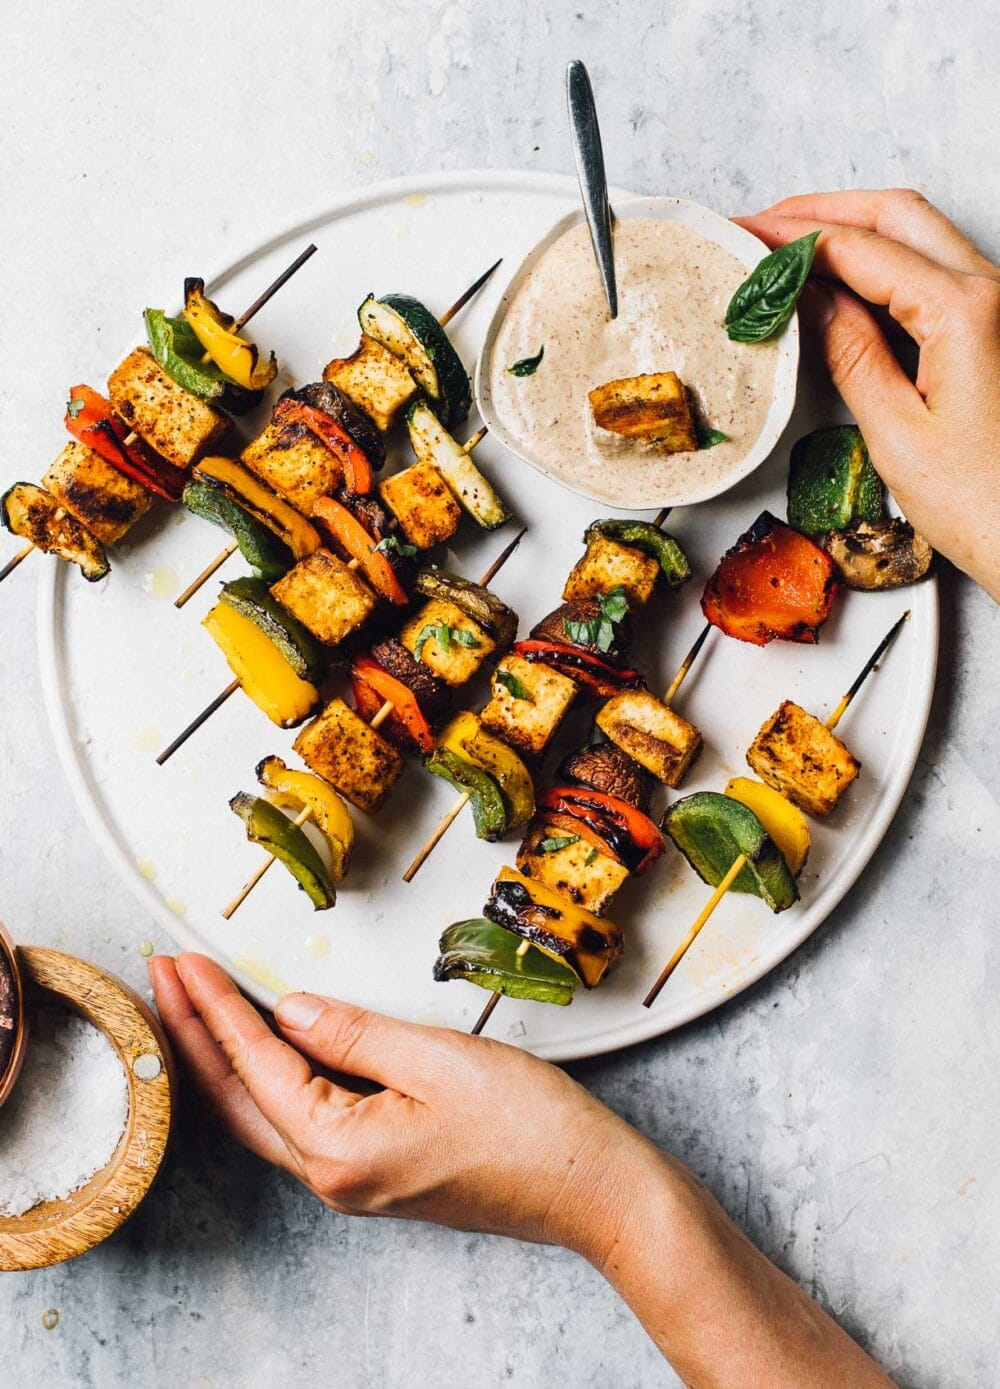 grilled veggie kabobs with dipping sauce on a white plate, woman holding the plate.